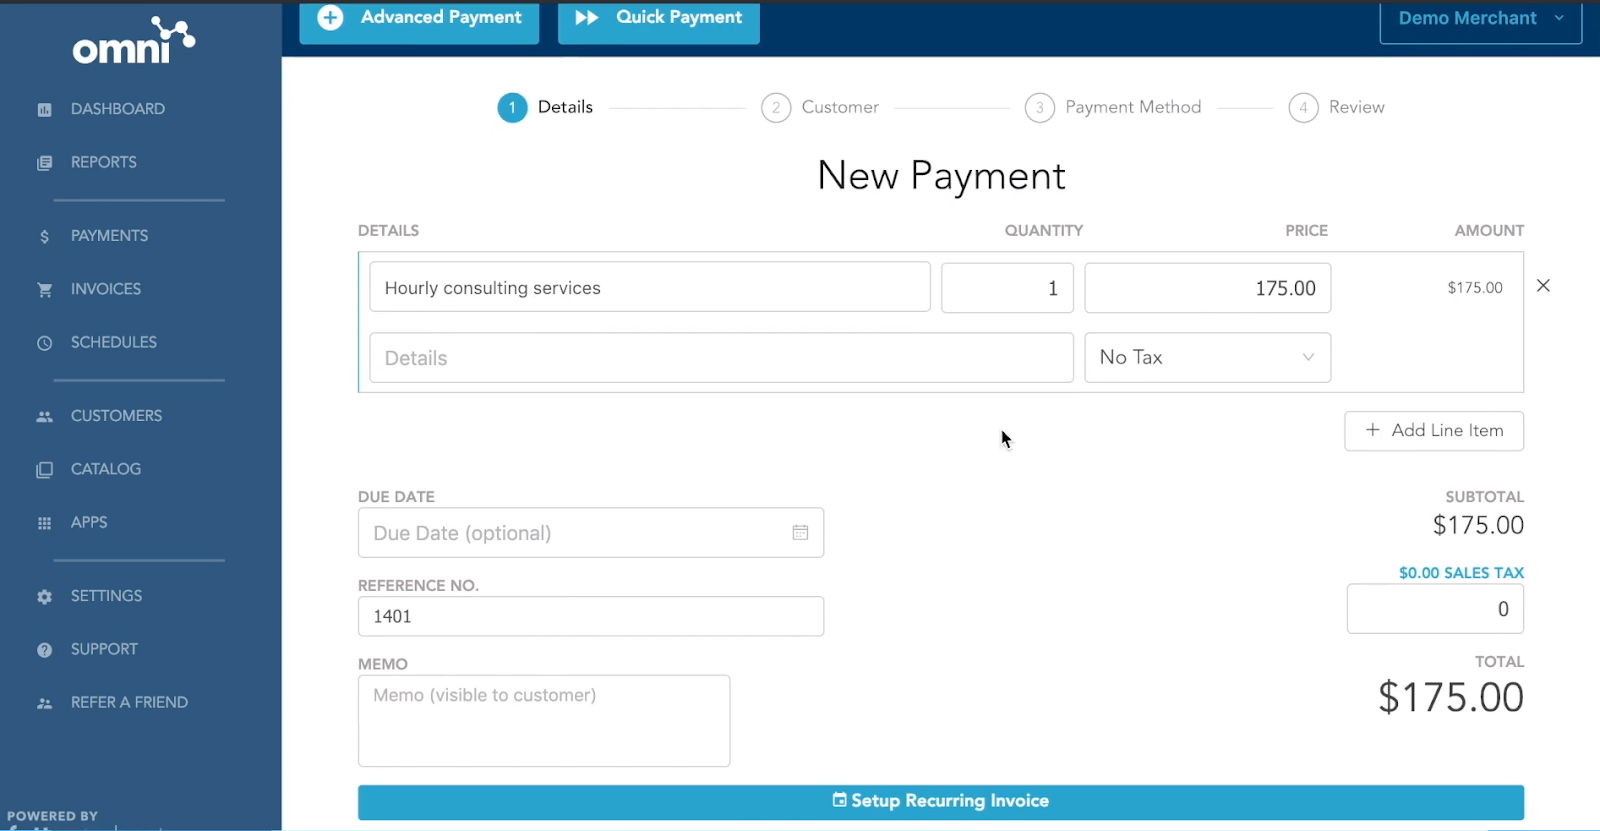 Omni New Payment Page